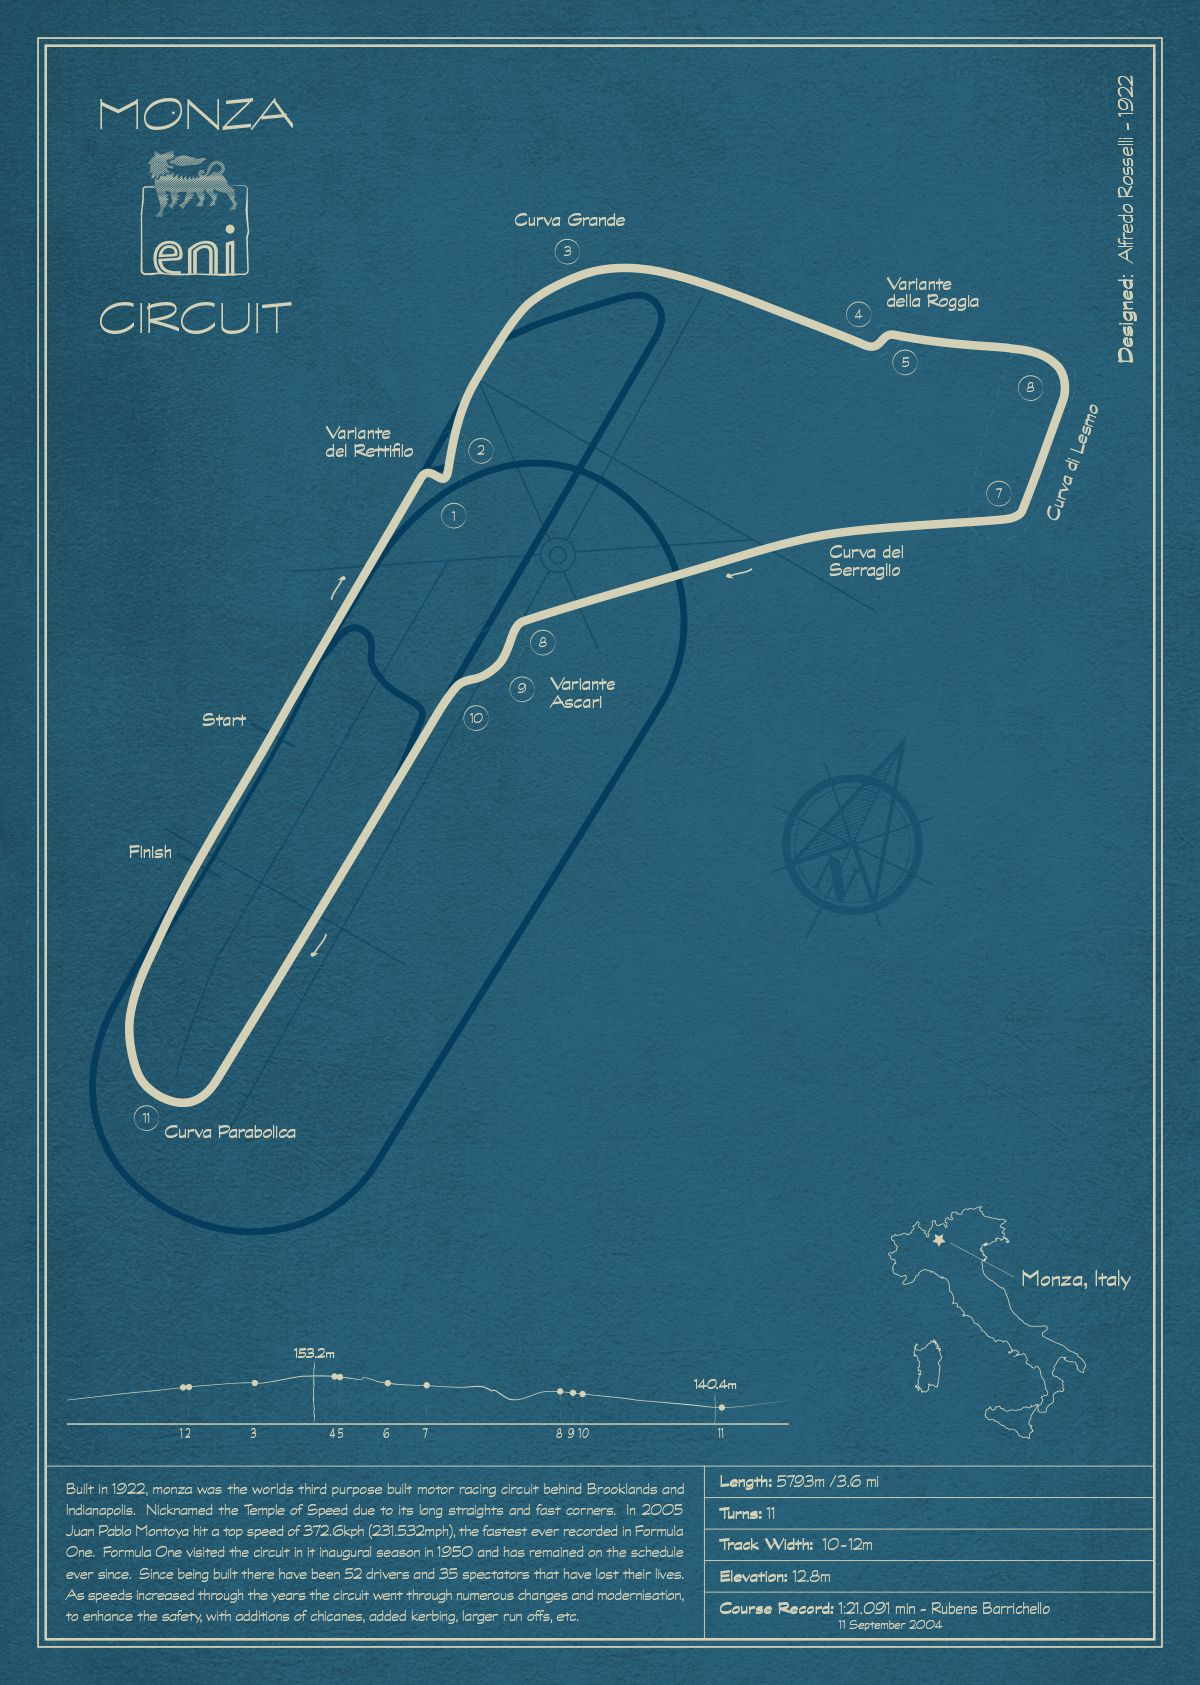 monza circuit track map blueprint [ 1200 x 1685 Pixel ]